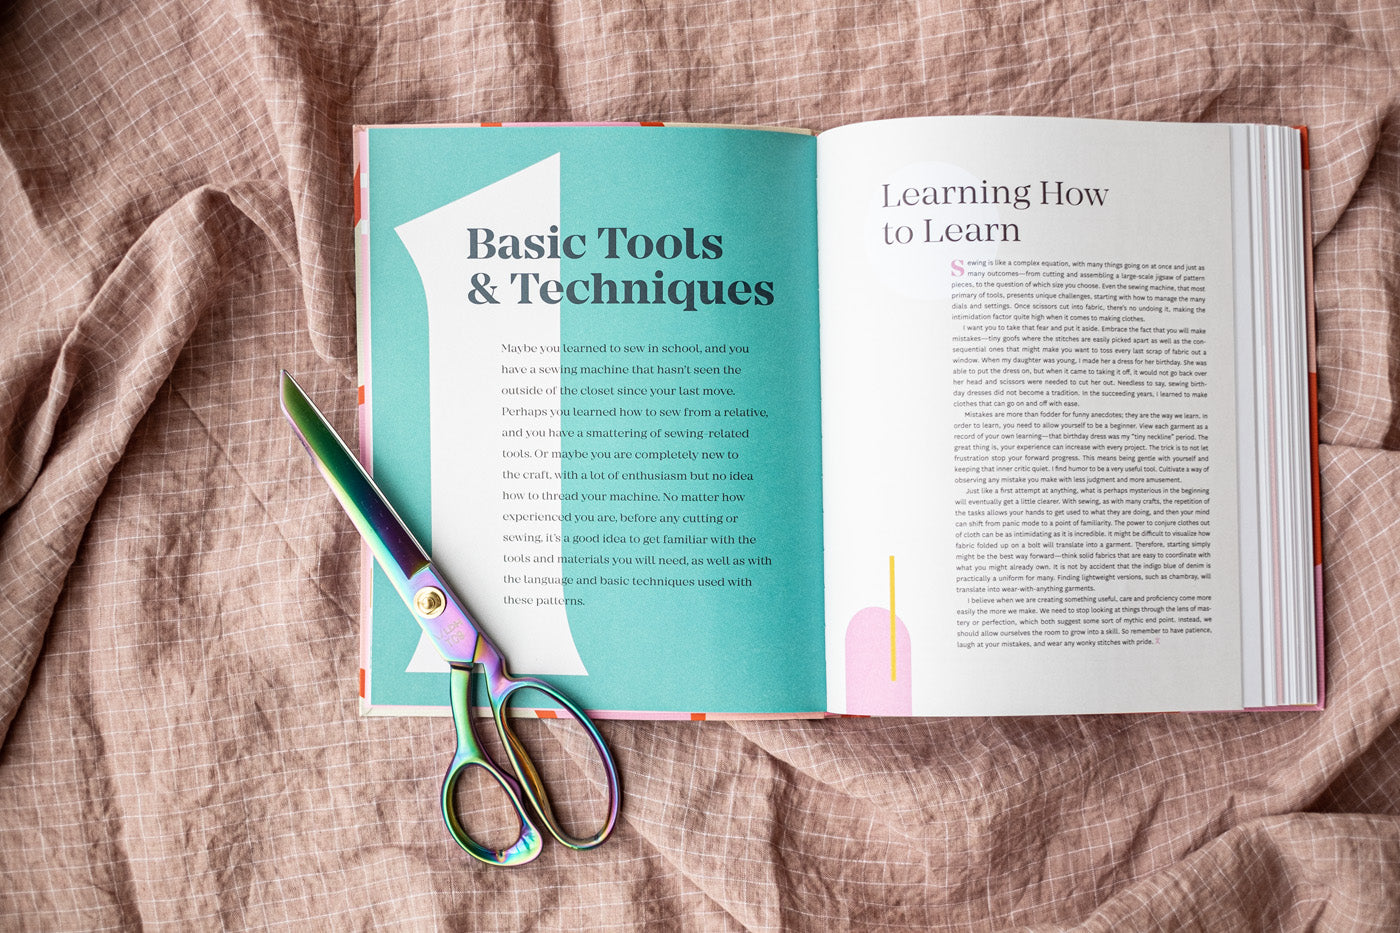 The book open to the first chapter, Basic Tools and Techniques, and a pair of scissors